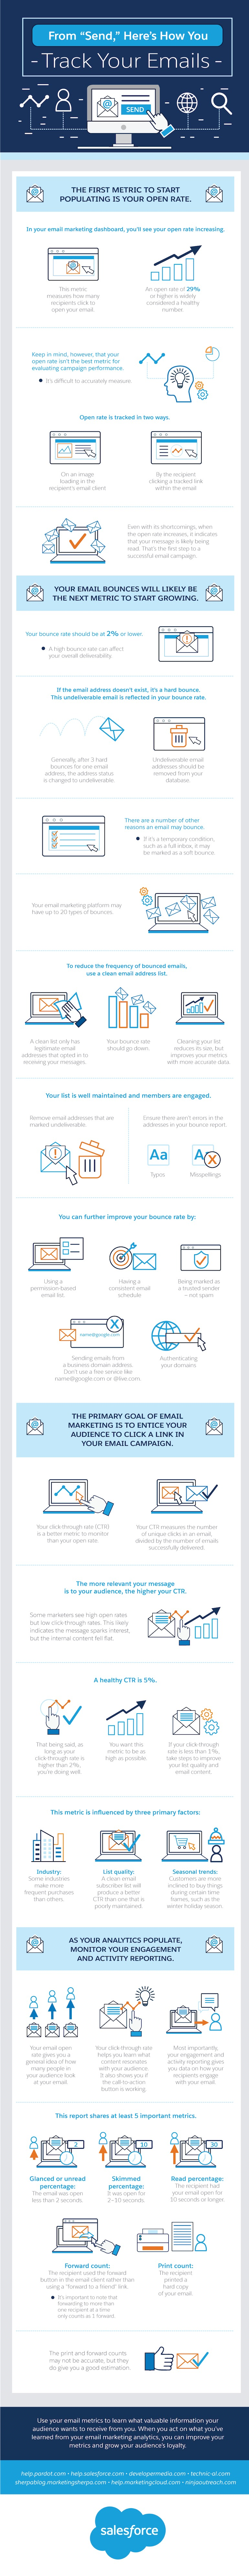 How to track your email metrics infographic